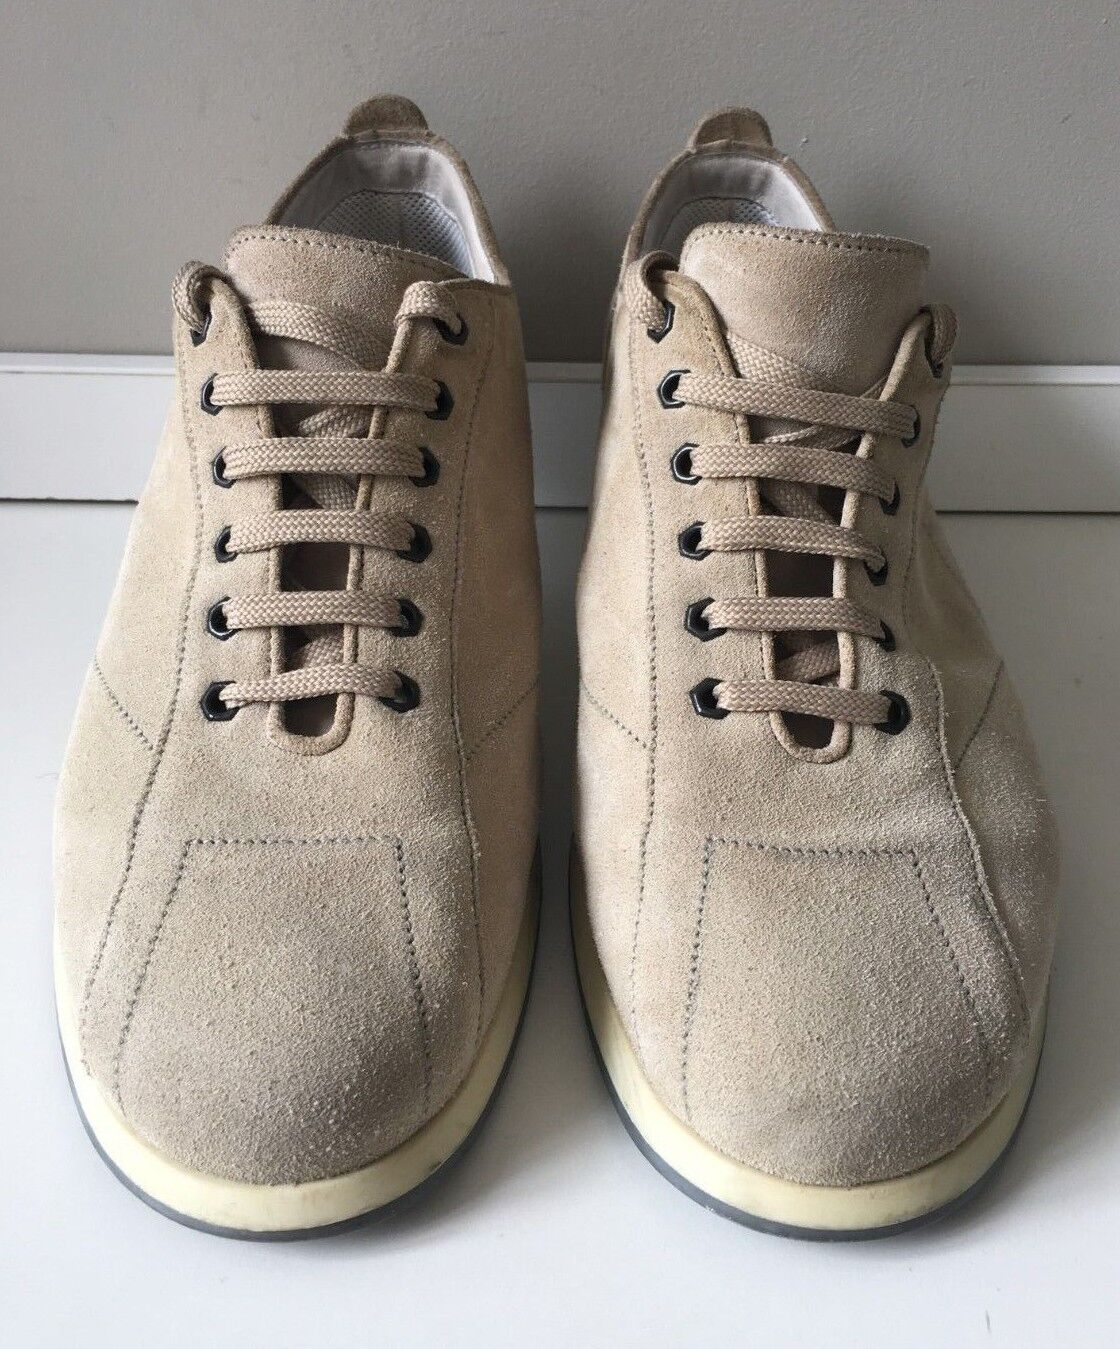 ZEGNA Sport Beige Suede Leather Sneakers - Mens Size 12 - Made in